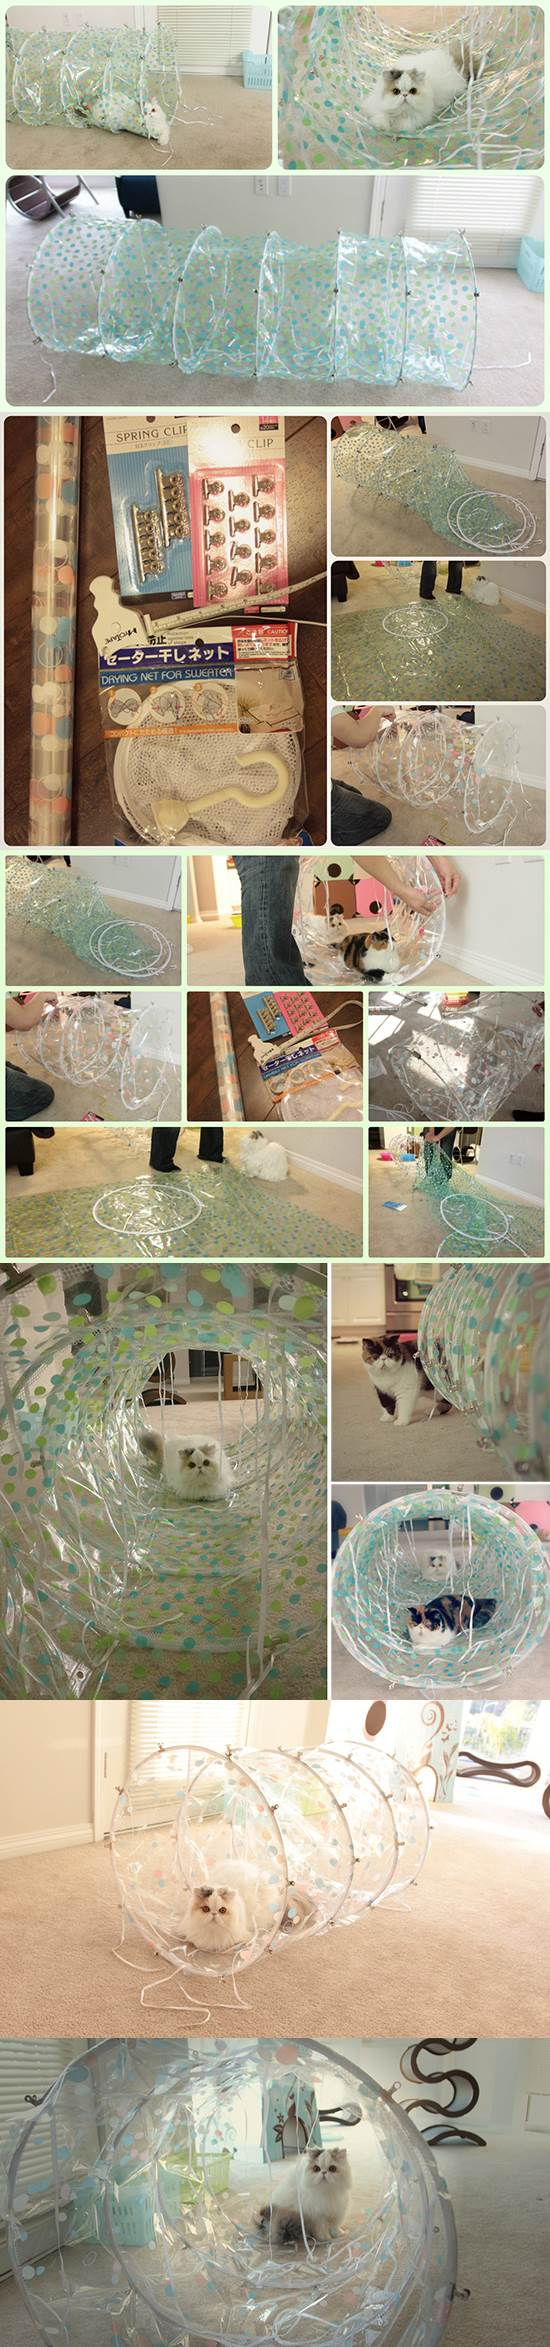 DIY Modern Transparent Cat Tunnel 2